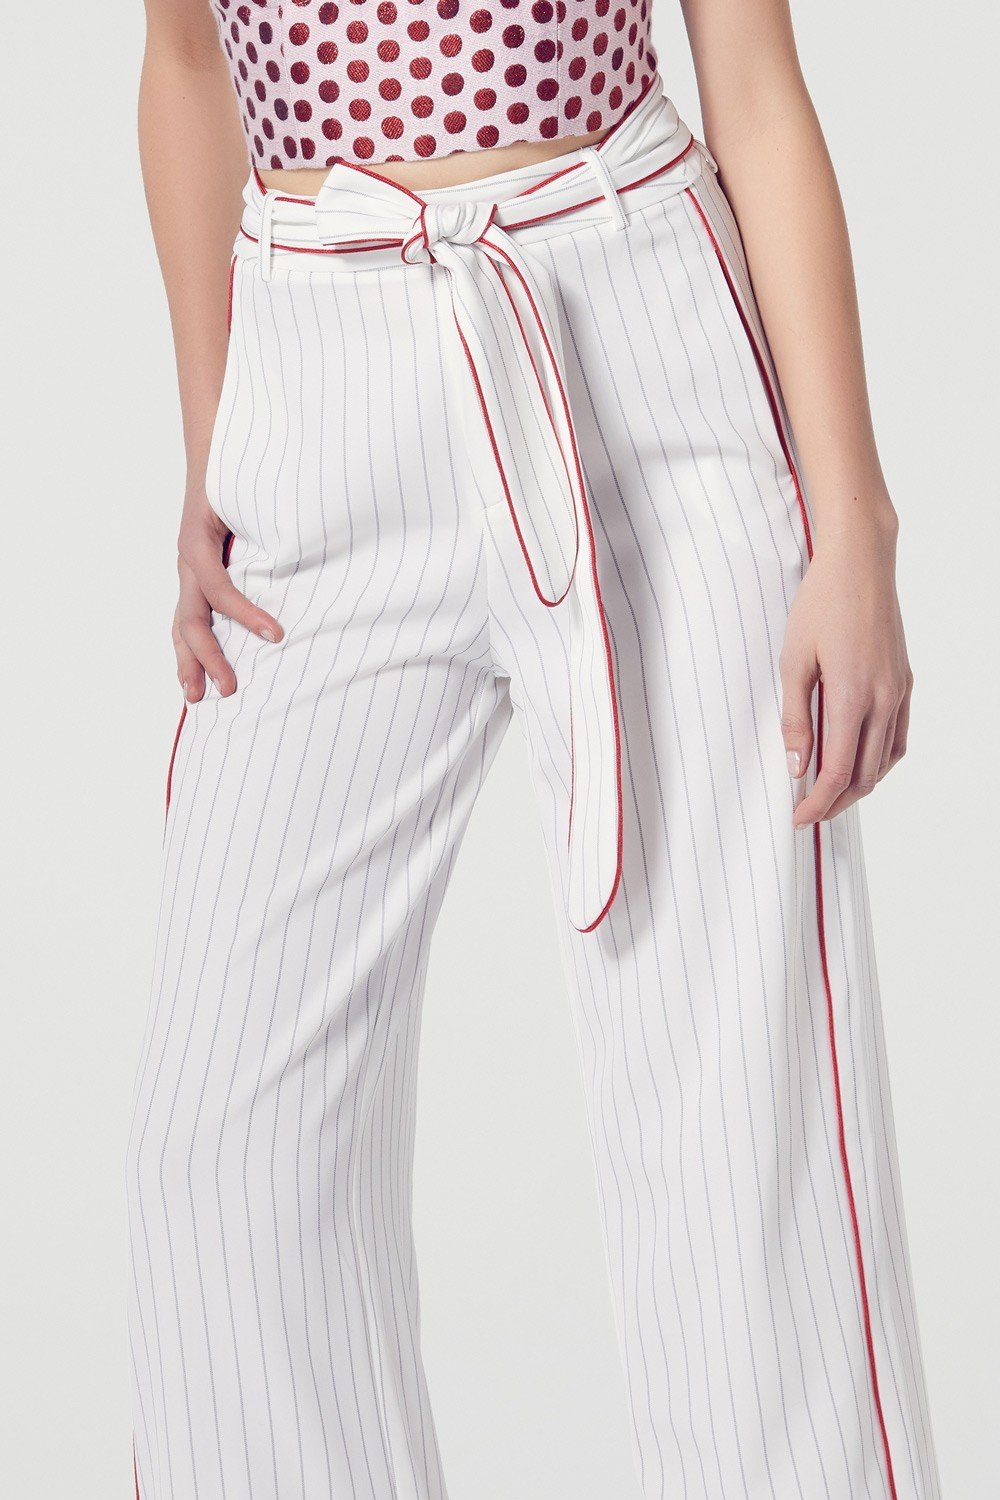 ATOIR The Caretaker Wide Leg Pinstripe Pants in White - Lookbook Boutique